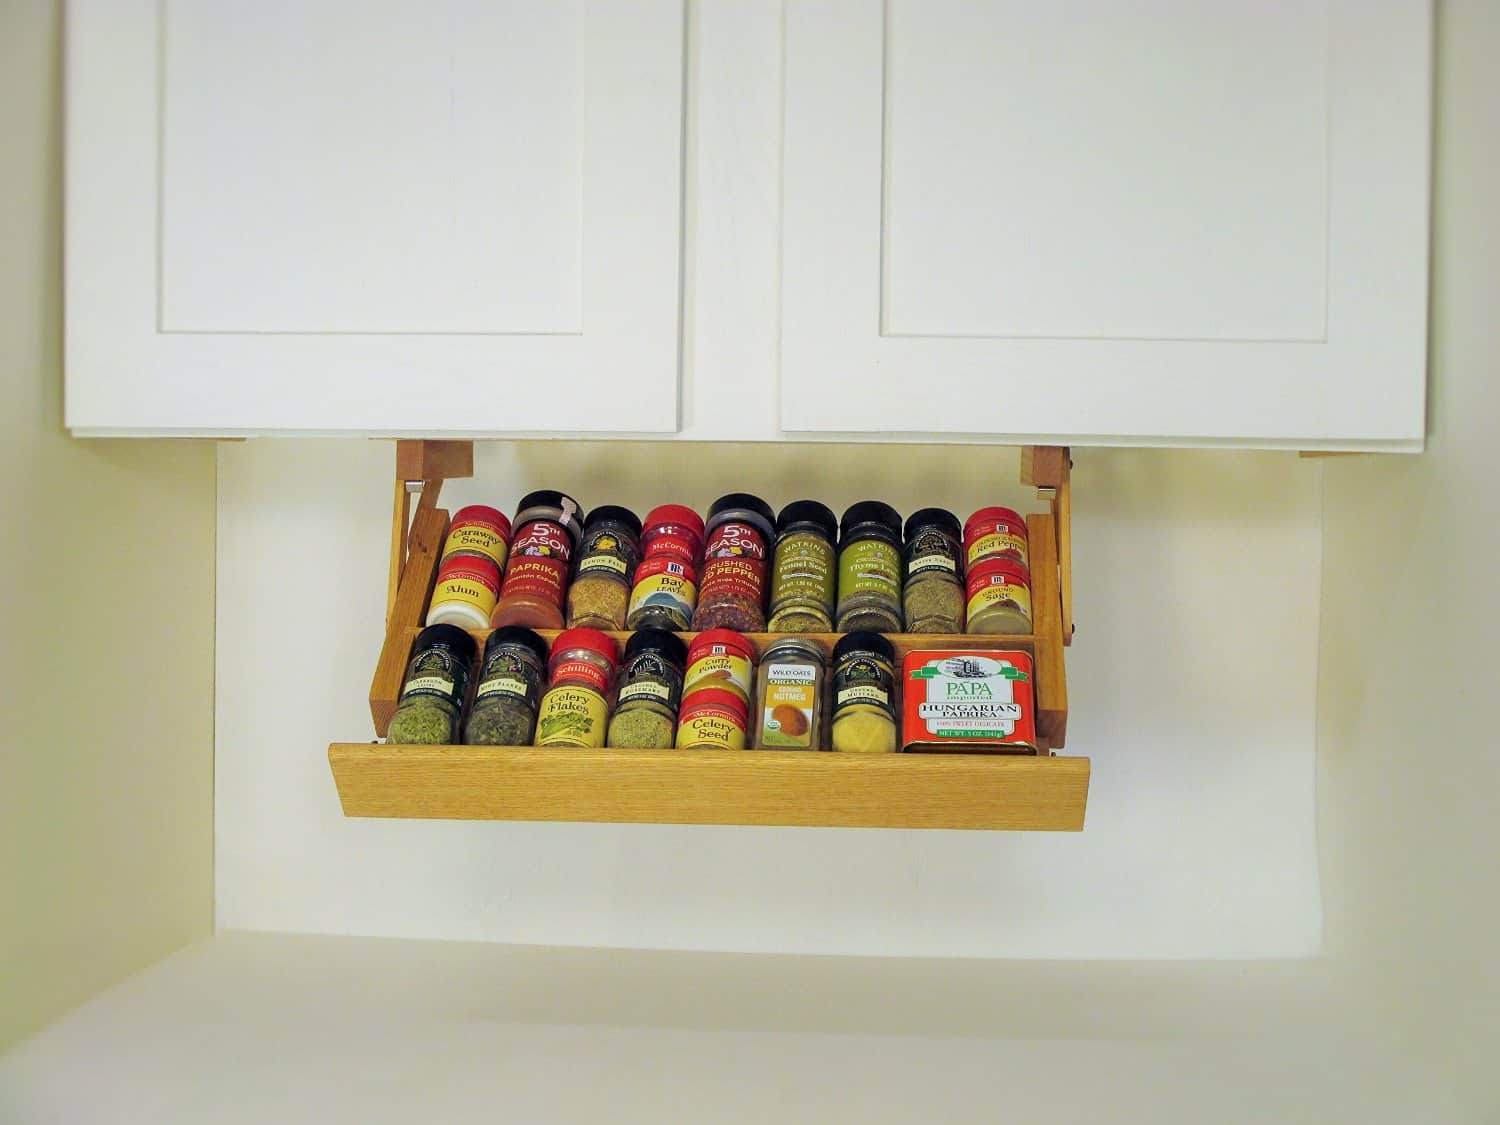 Handmade Hardwood Under Cabinet Mounted Spice Rack (3)